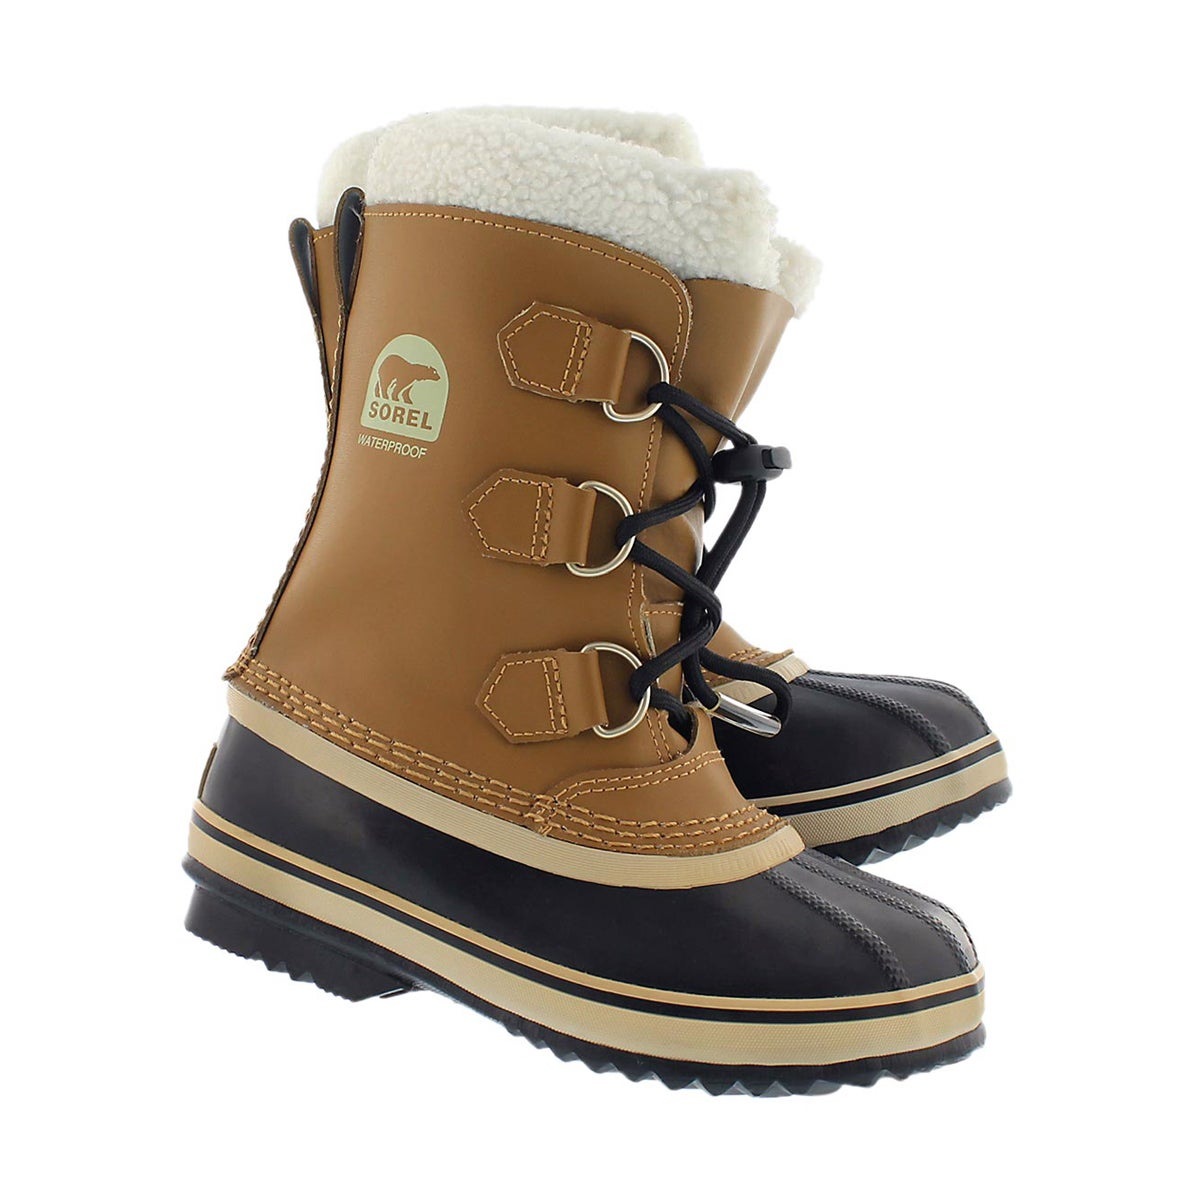 Bys Yoot Pac TP mesqt wtpf winter boot